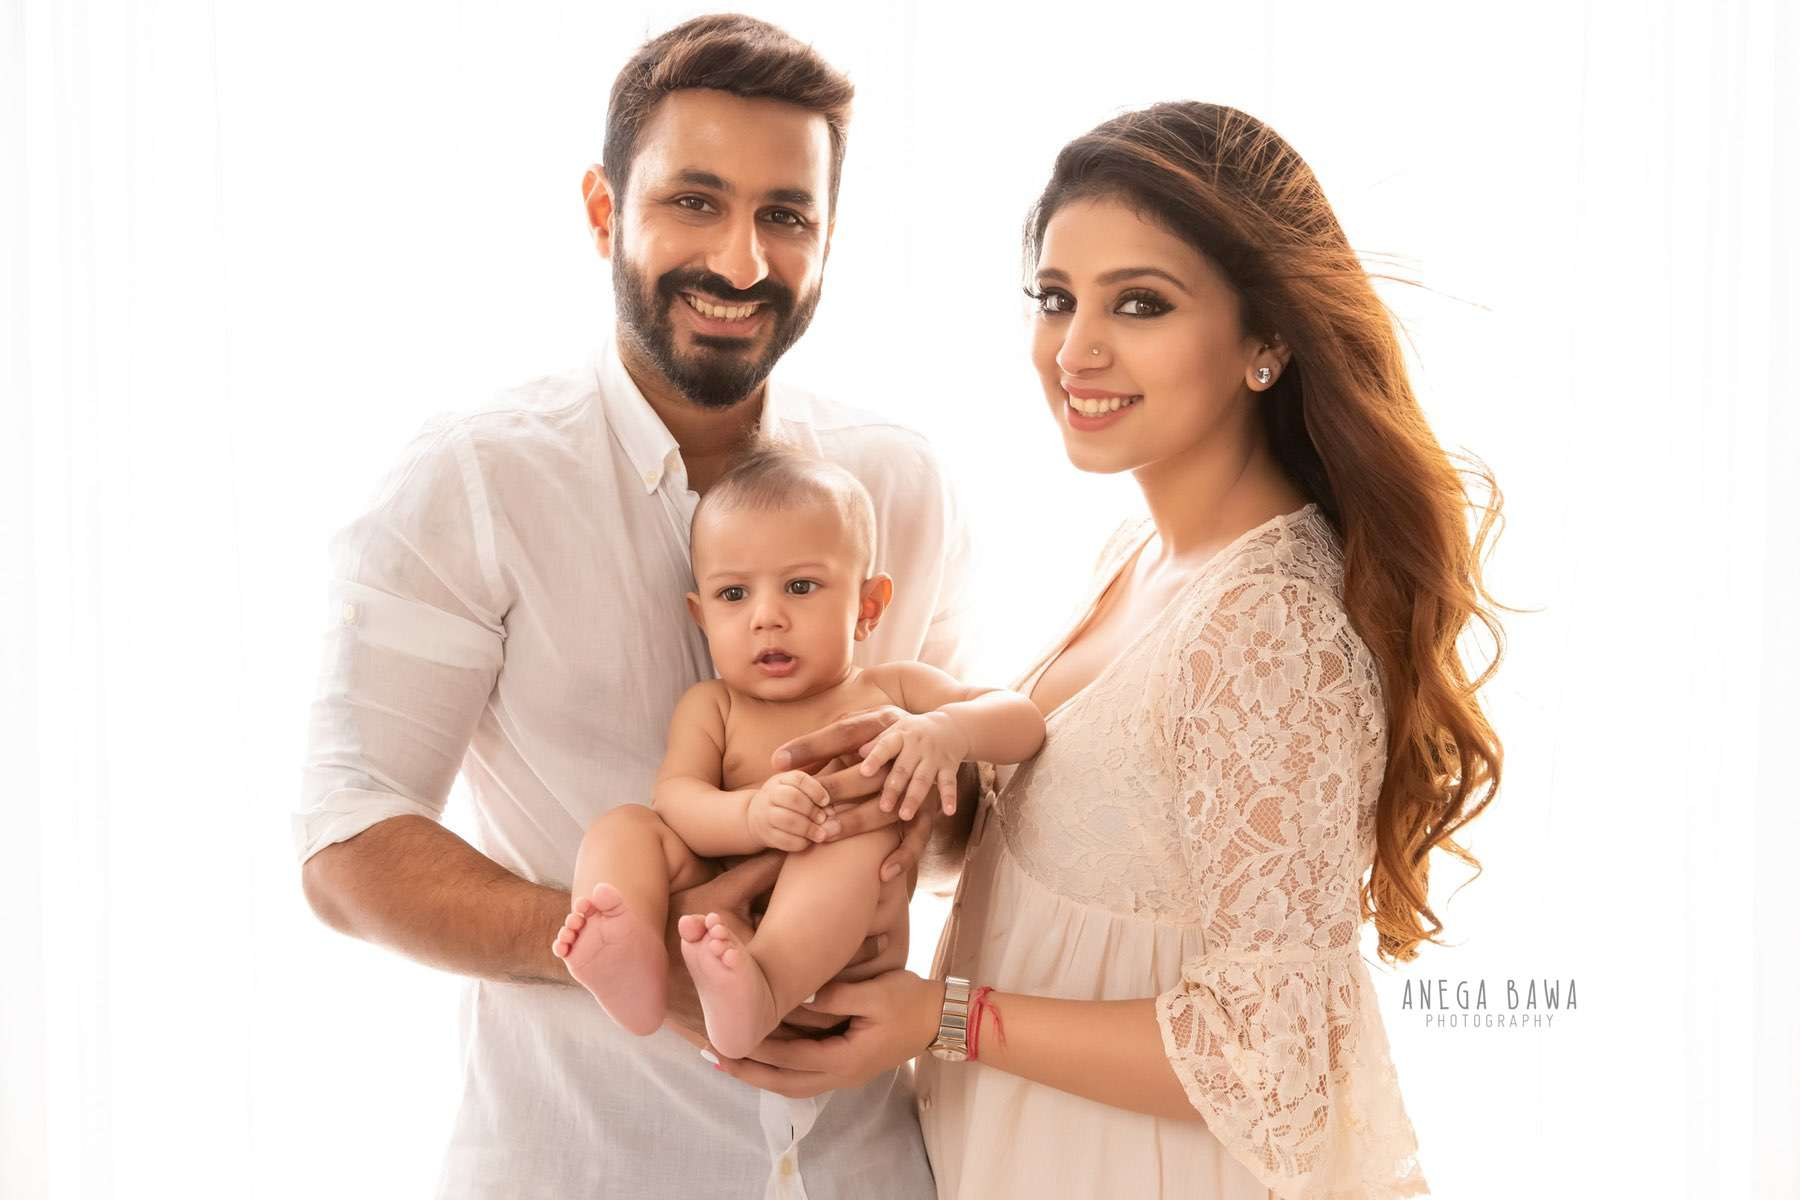 245608-white-background-family-baby-photography-delhi-4-5-6-7-months-baby-photoshoot-gurgaon-anega-bawa